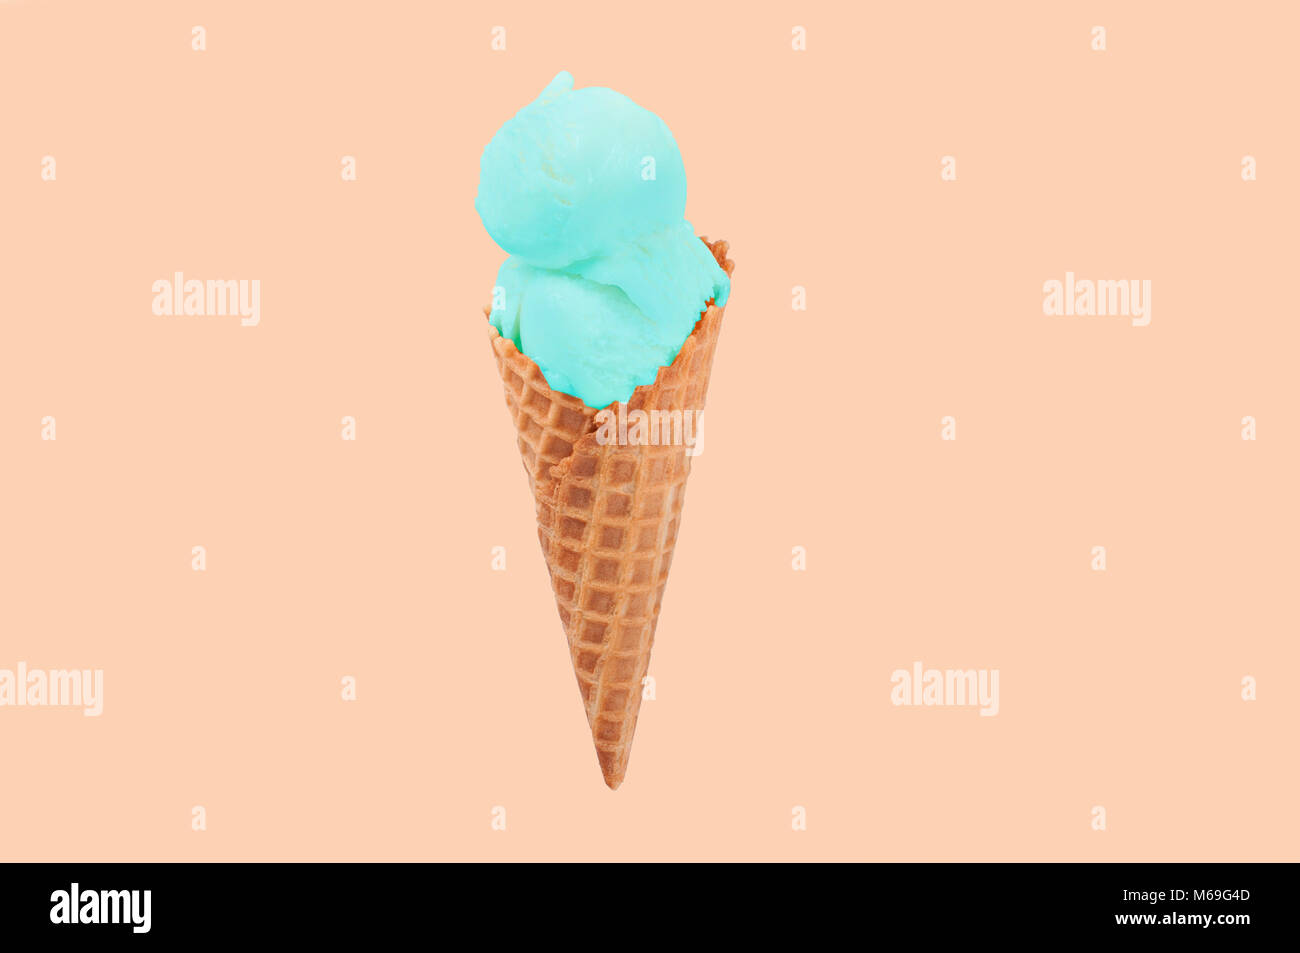 Pistachio ice cream cone on faded pastel color background. Ice cream in wafer cup. - Stock Image